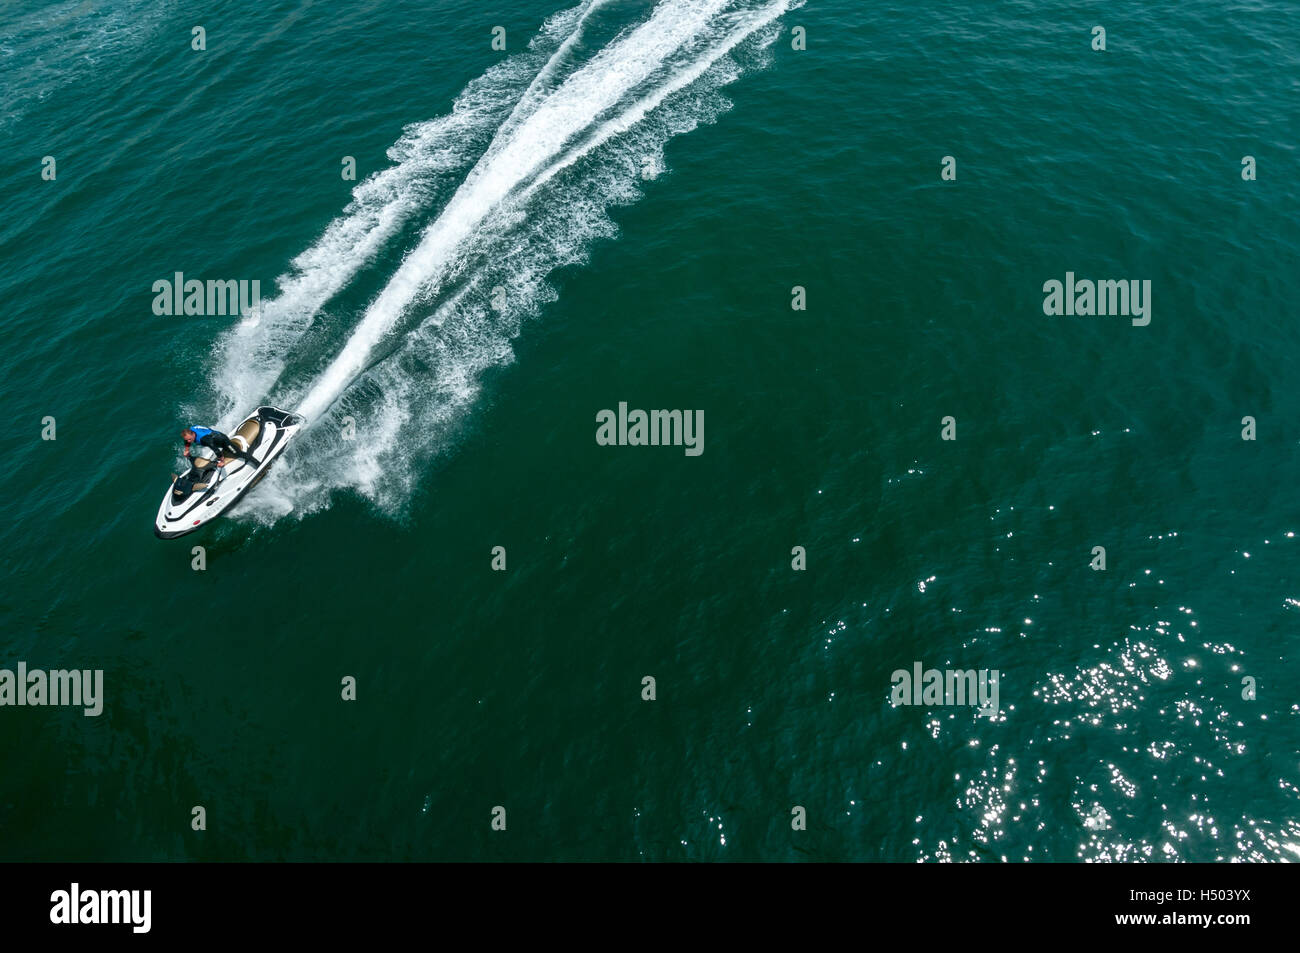 Man on a jet ski thunders over the water on the south coast of England - Stock Image